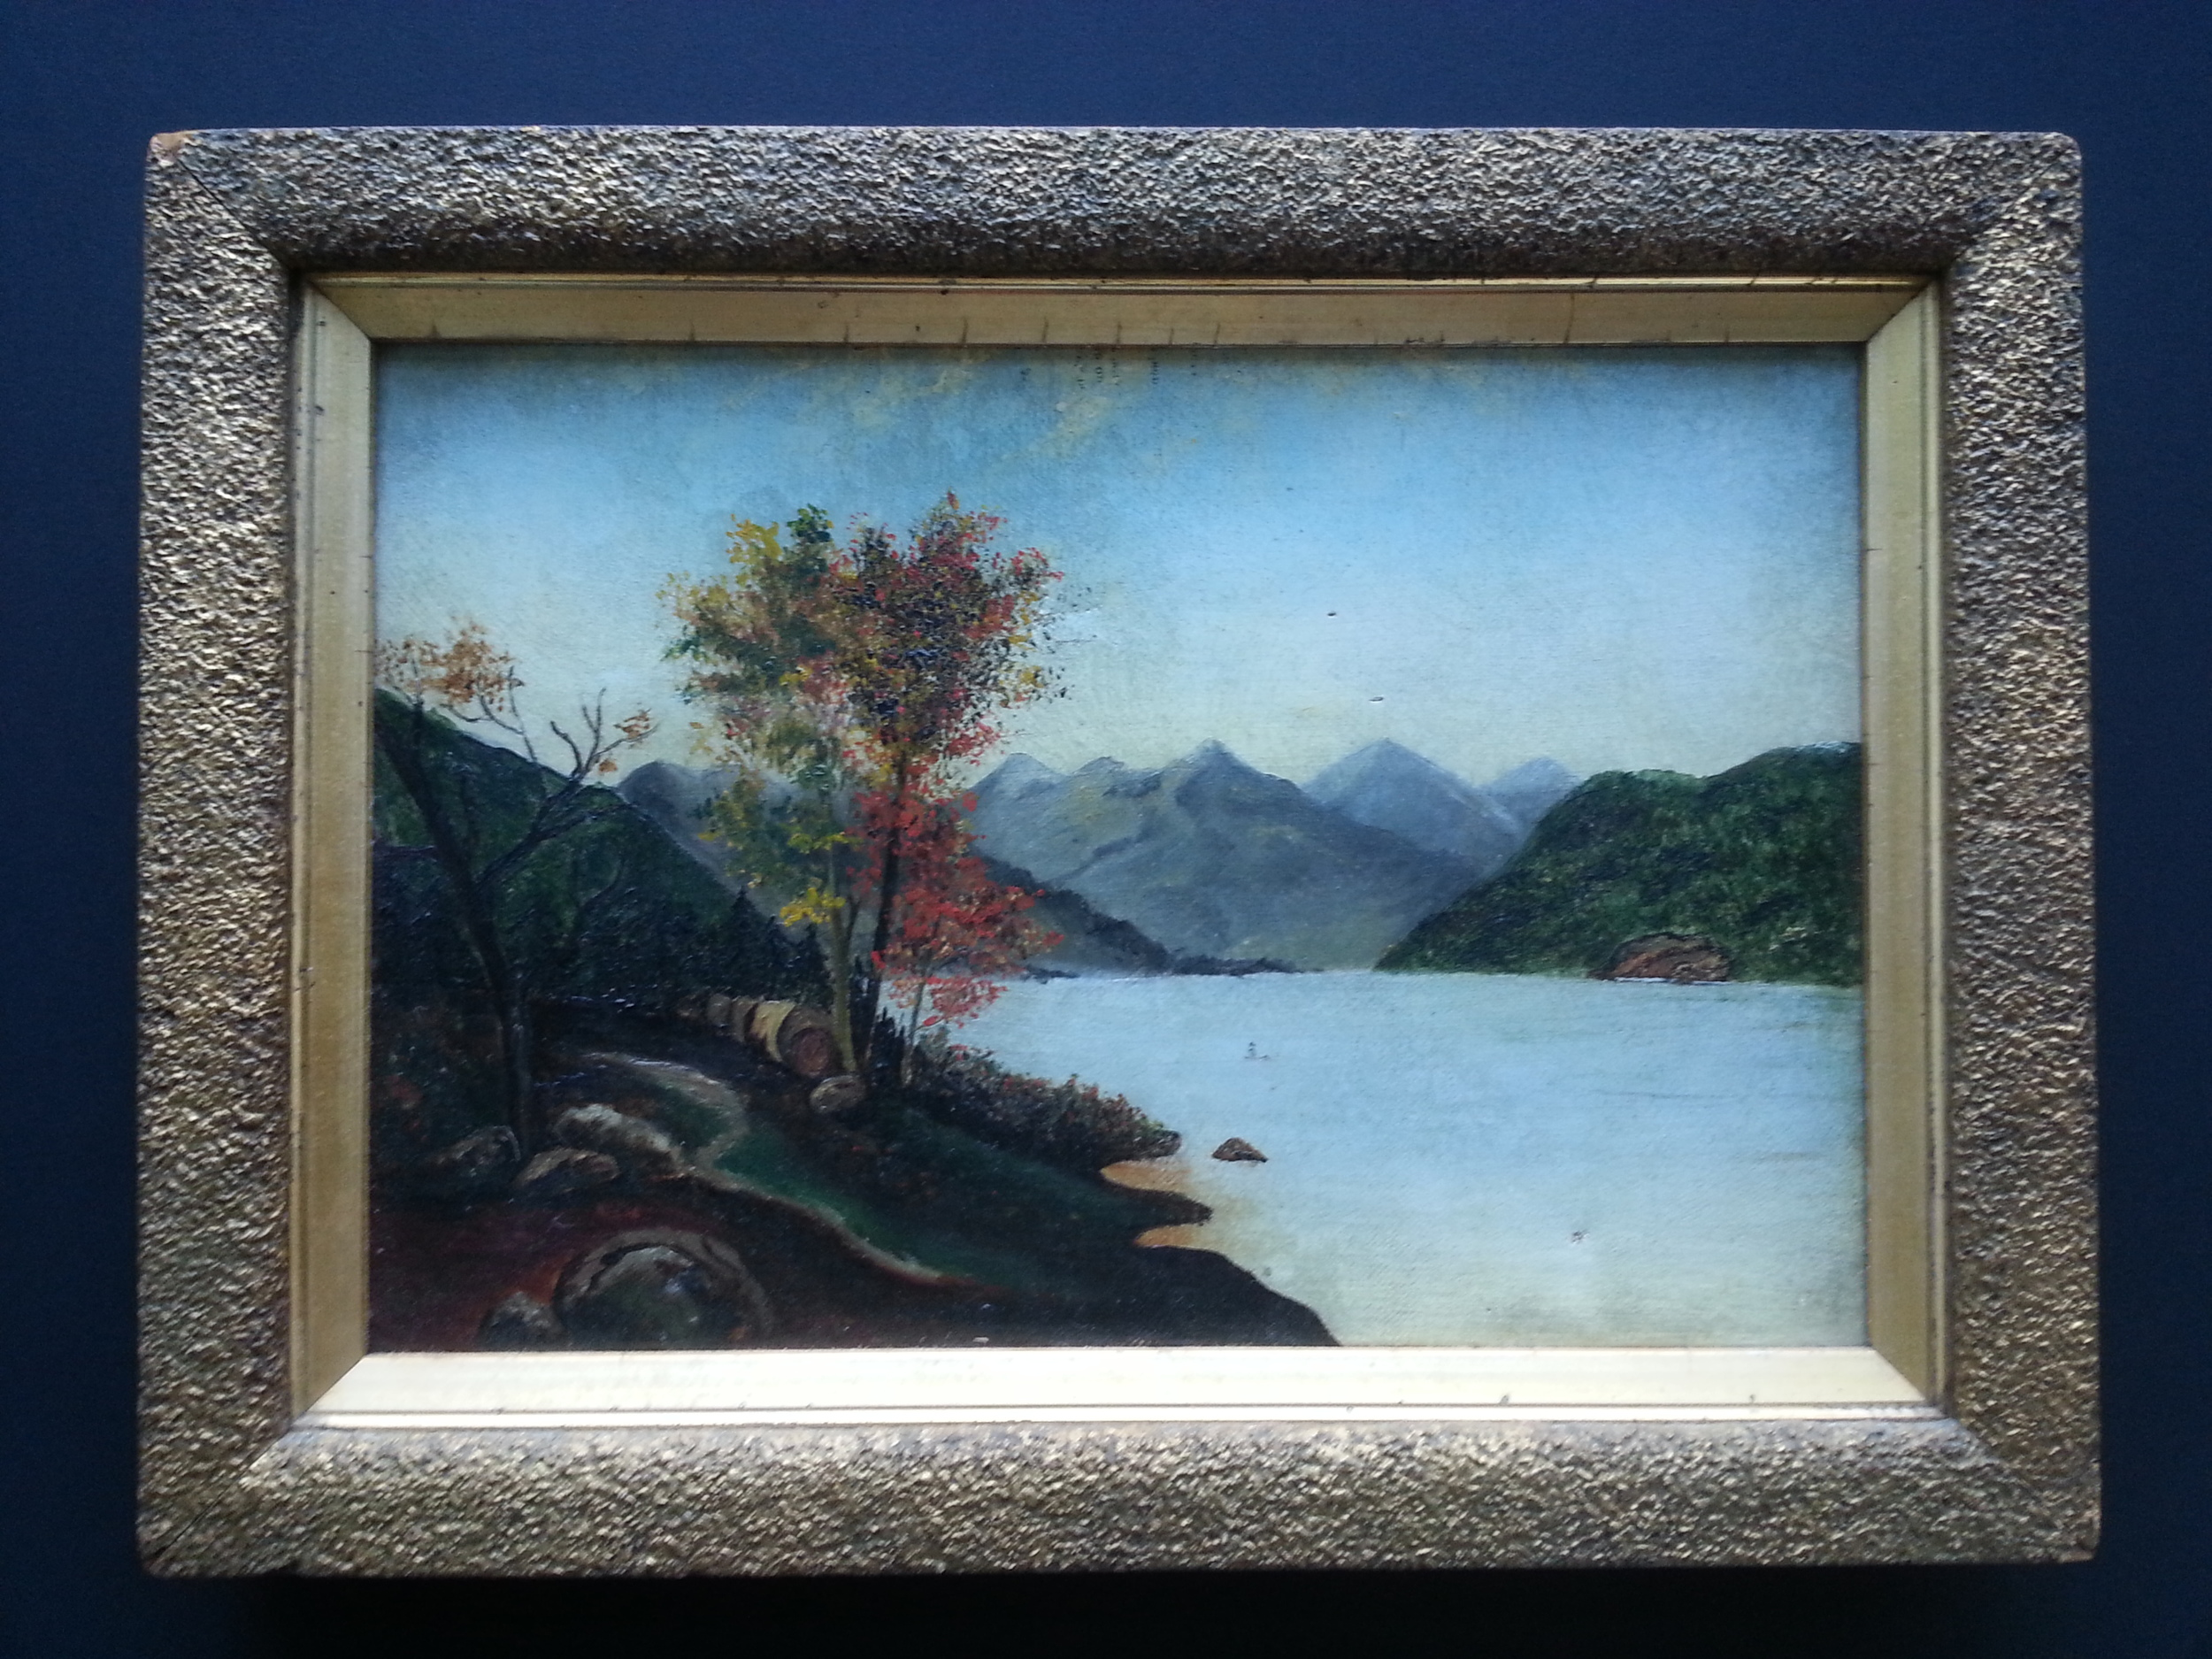 """River View with Mountains    Oil on Canvas, Unsigned  8 1/2"""" x 12 1/2"""" / 11 1/4"""" x 15 1/4"""" Framed ( Original Period Frame )    Price Available Upon Request"""